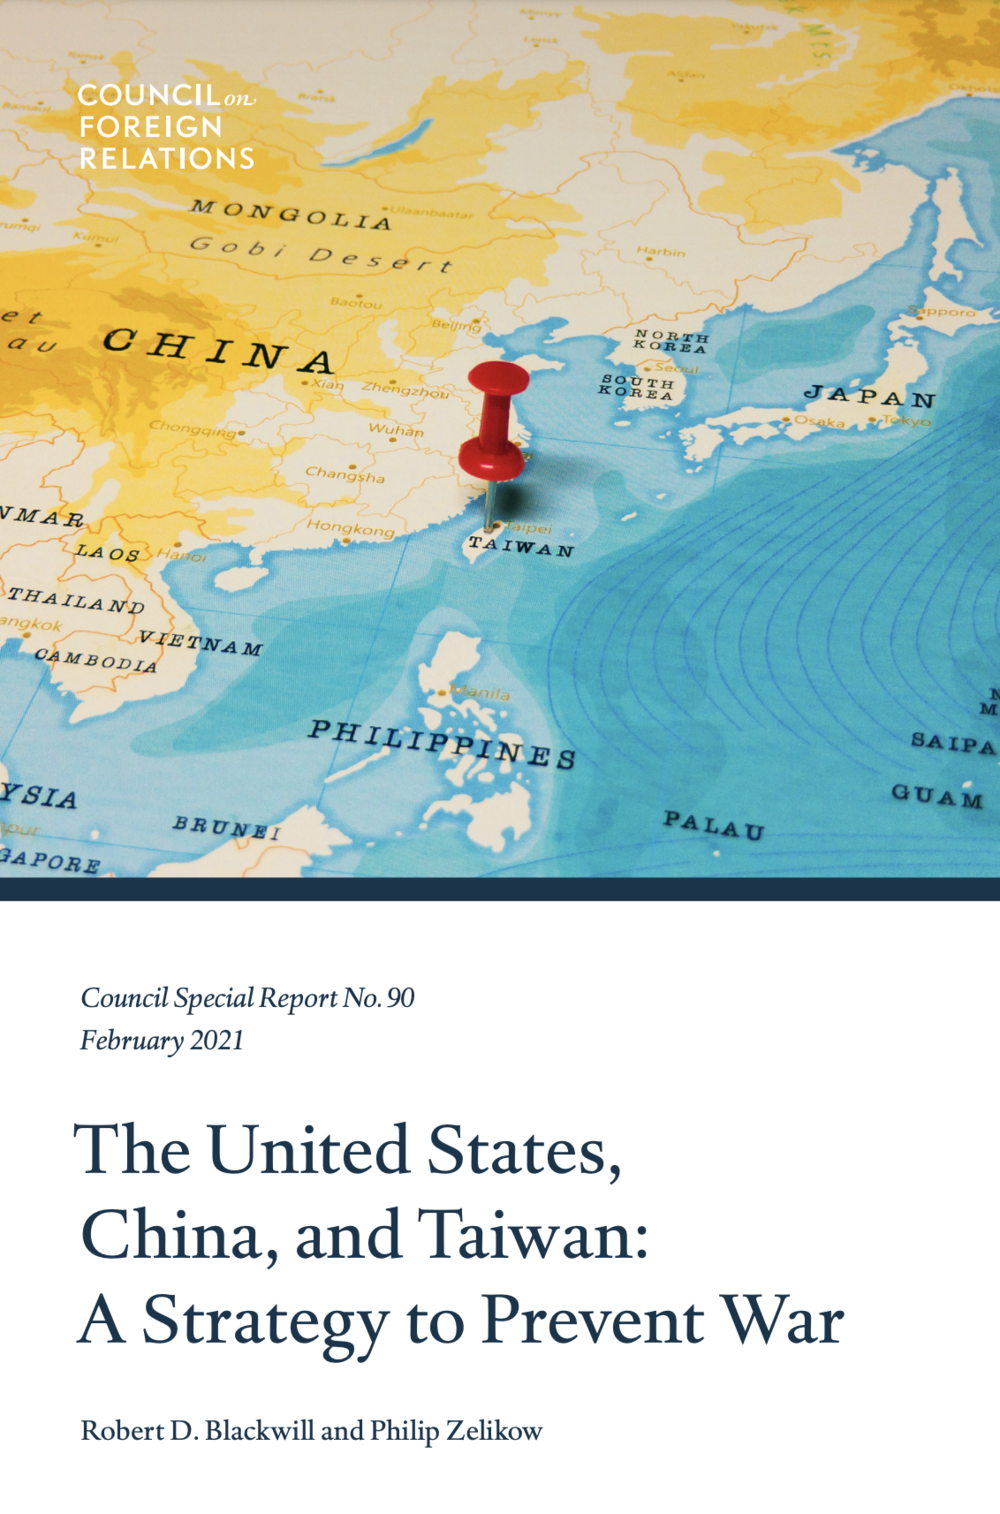 The United States, China, and Taiwan: A Strategy to Prevent War